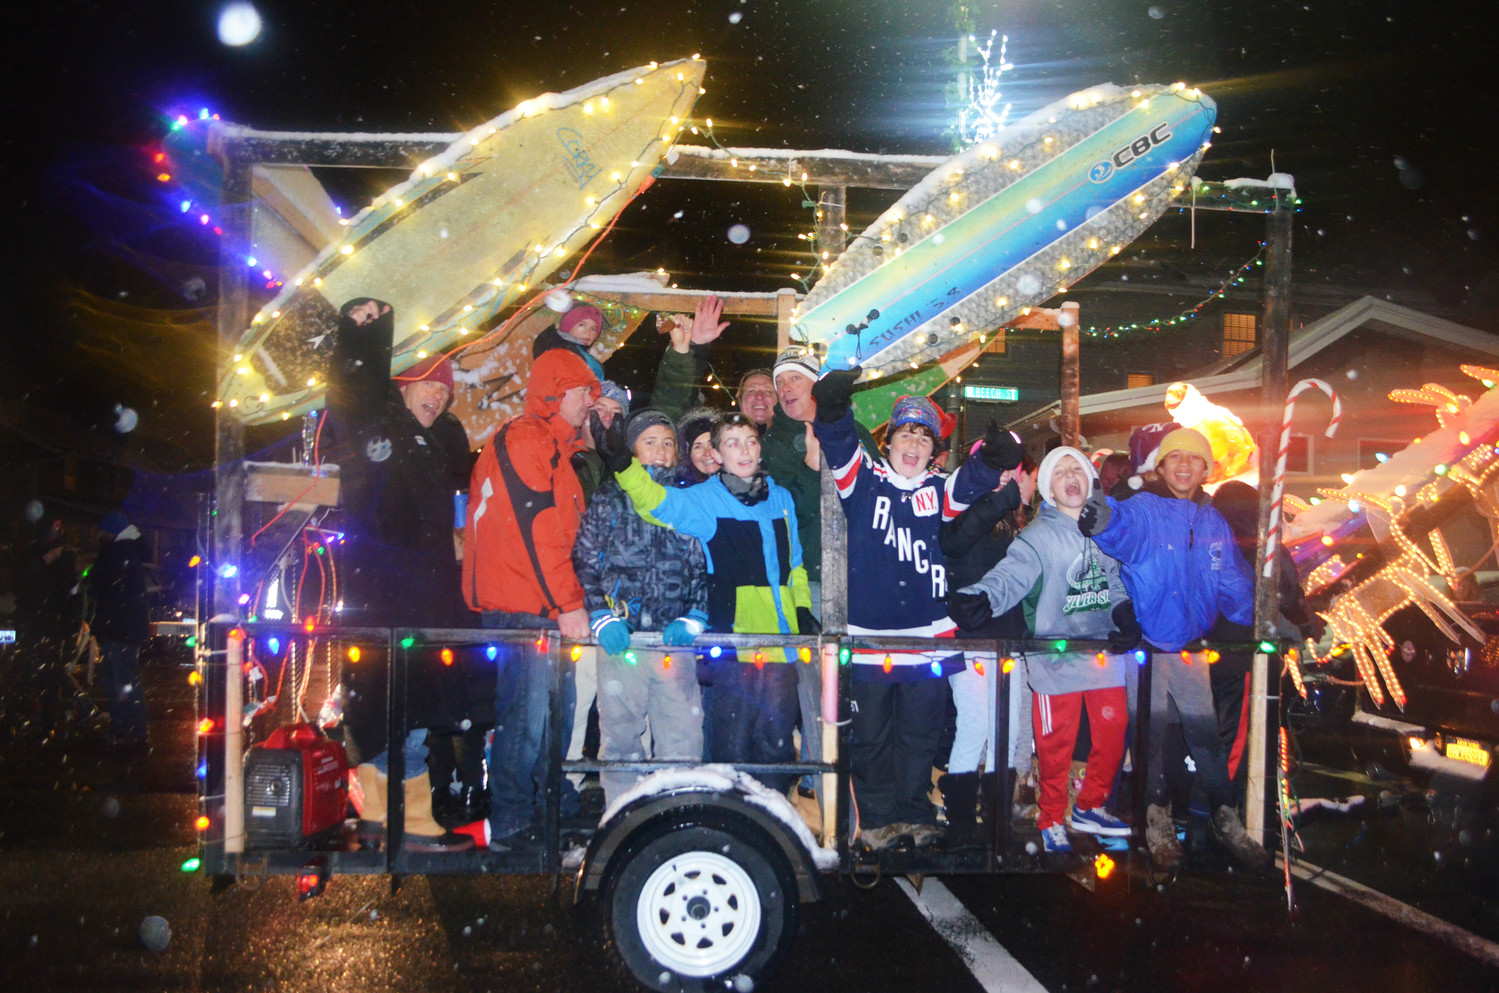 More than 1,000 people gathered in the West End last Saturday for the fifth annual Long Beach Electric Light Parade, featuring antique cars, fire trucks and floats decorated in festive lights.